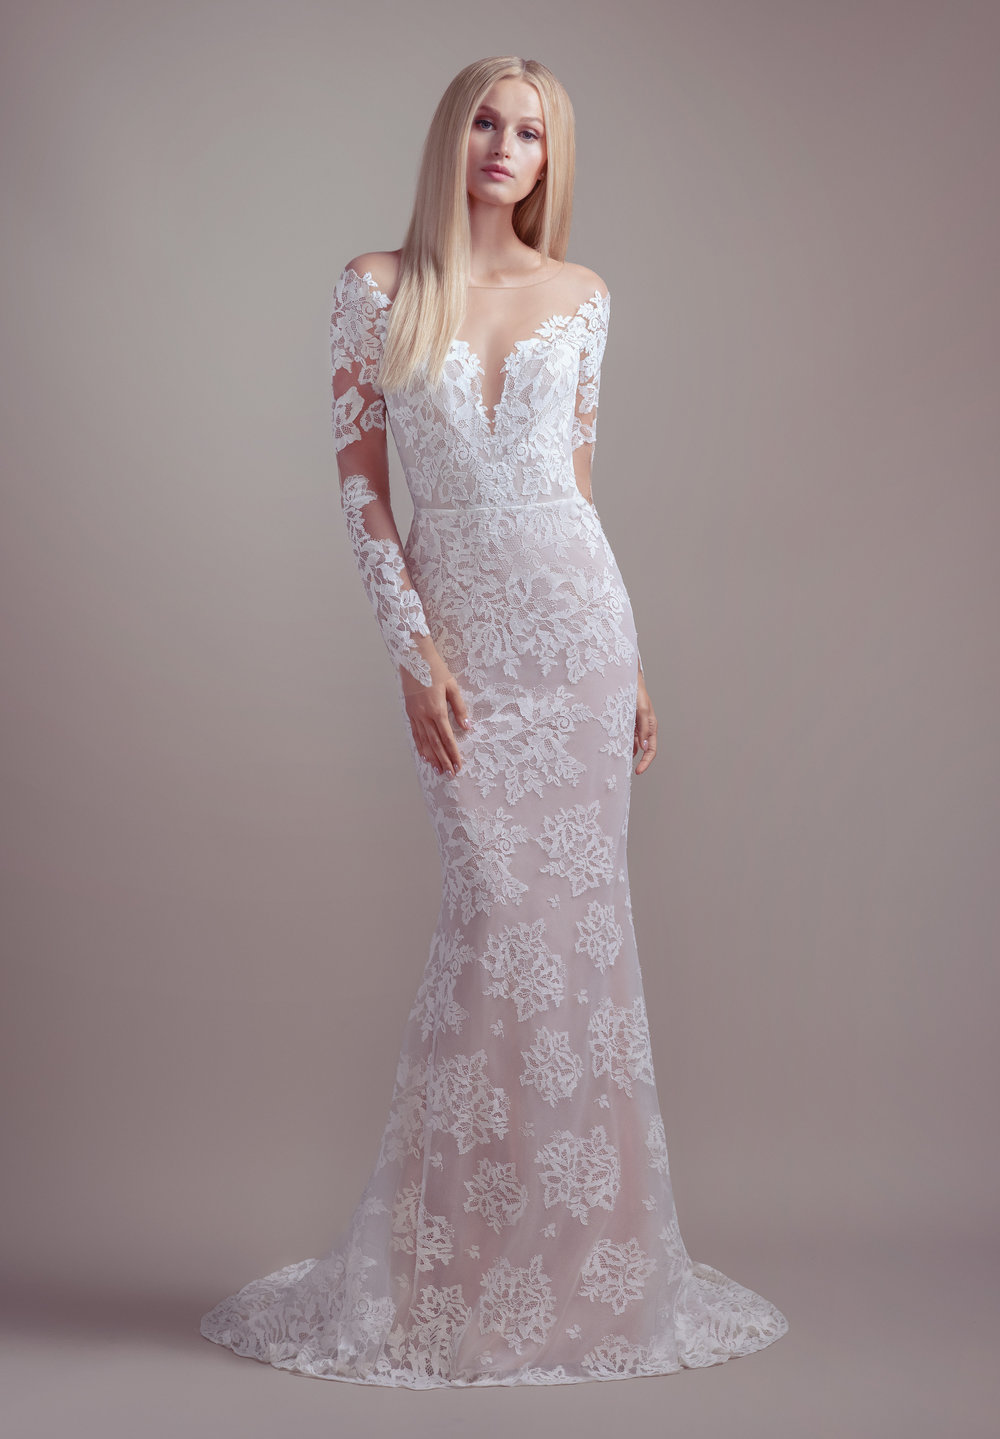 blush-hayley-paige-bridal-spring-2019-style-1906-jameson_1.jpg